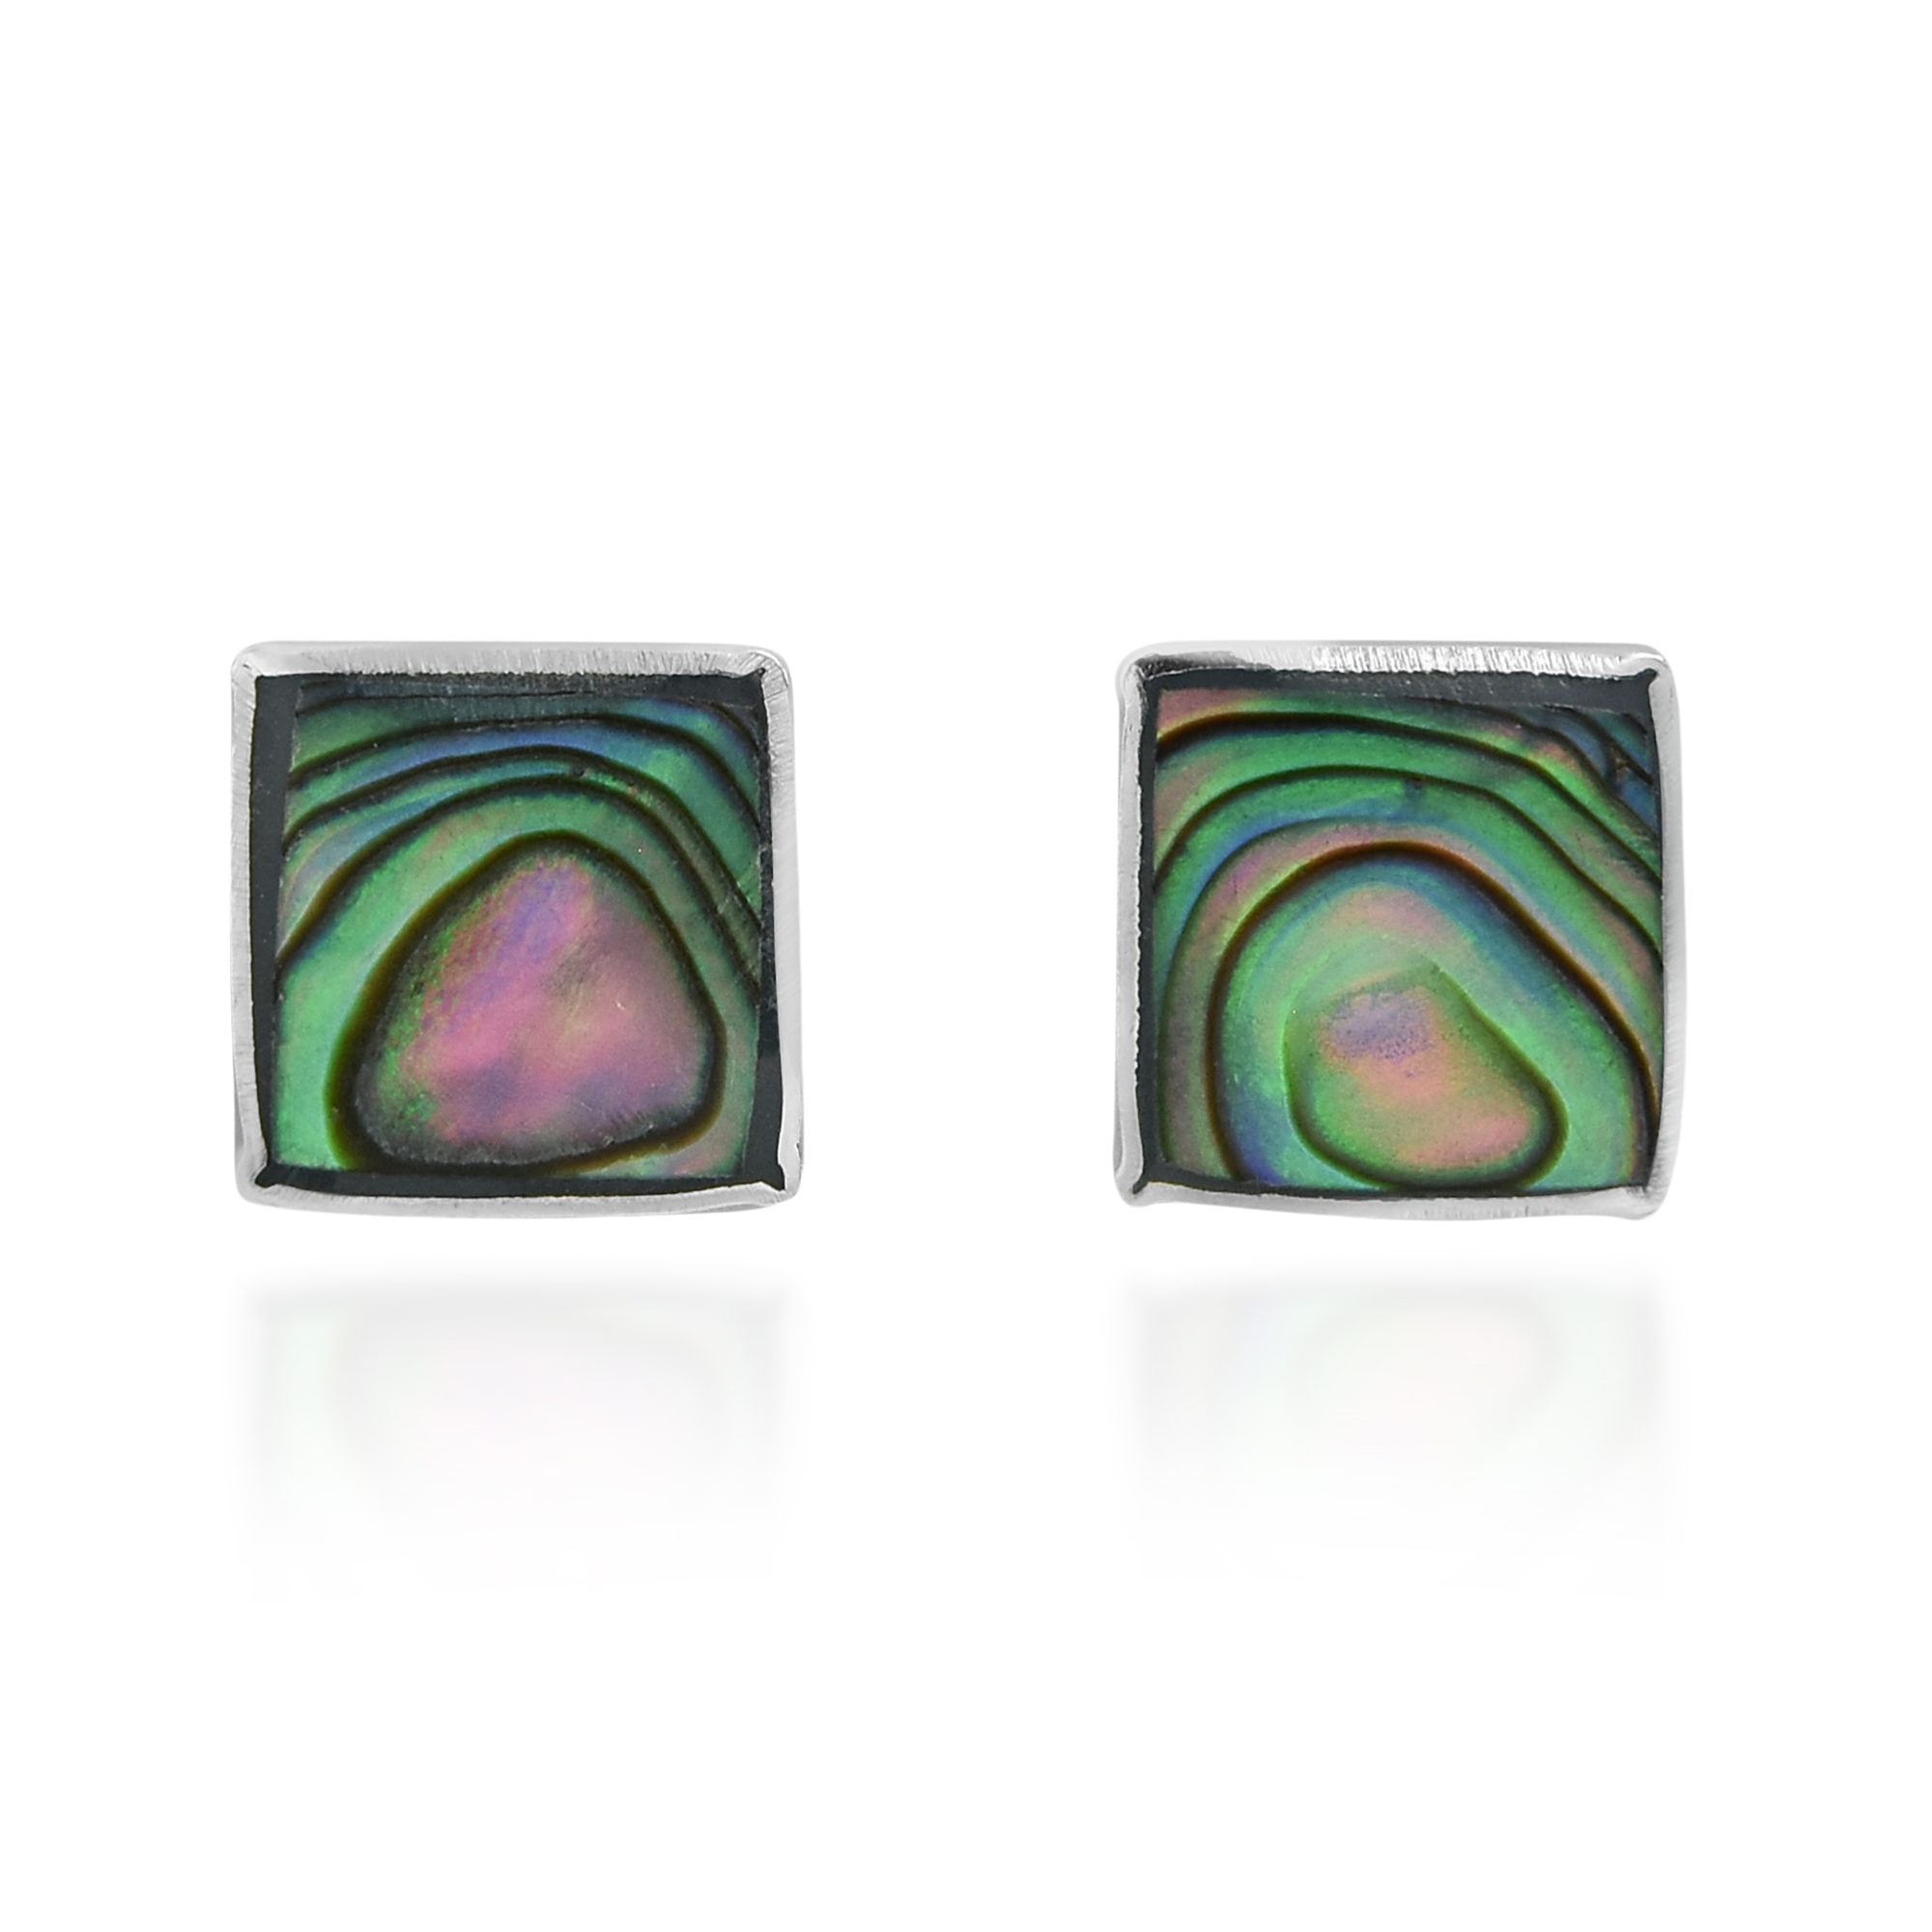 jewelry abalone enlarged products realreal chanel the earrings stud